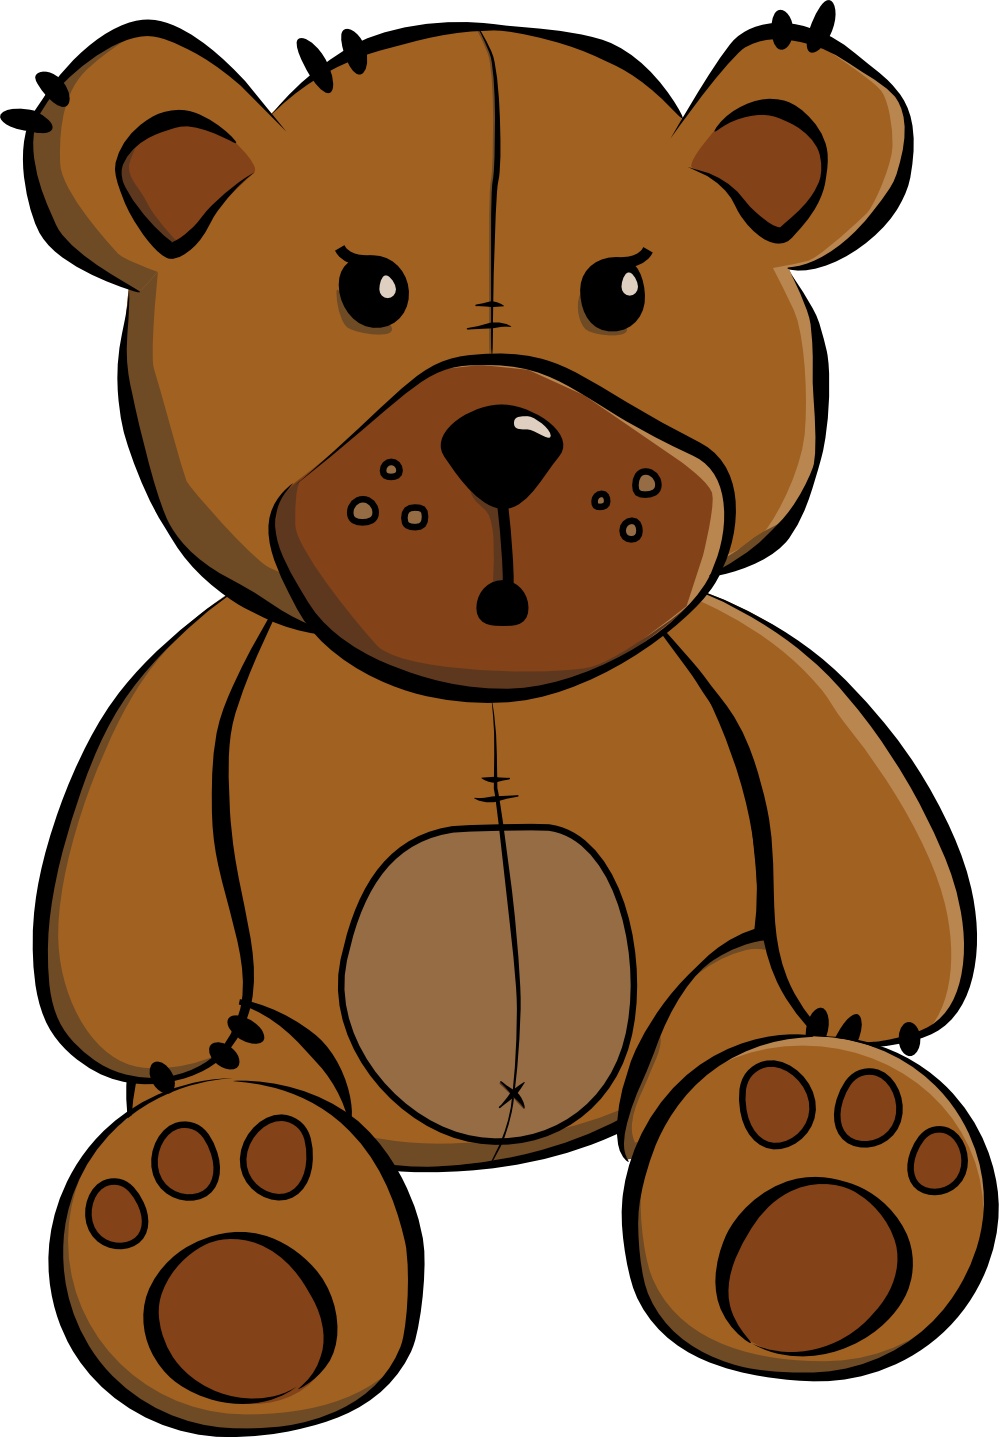 Teddy bear clipart school clipart teddy bear plush baby bear 4.